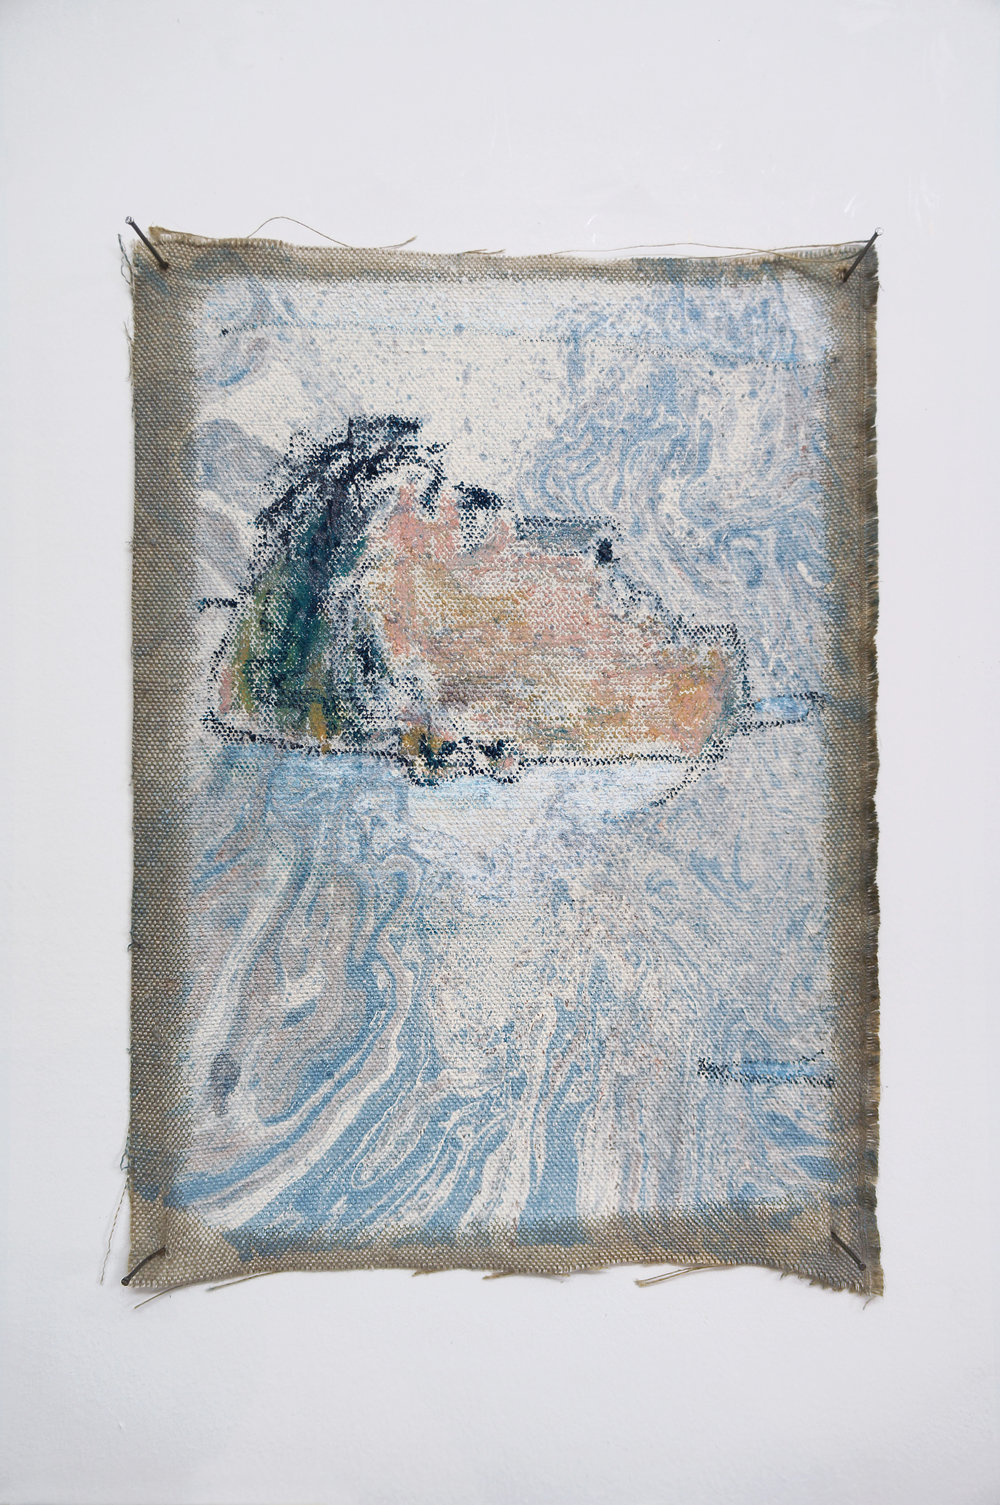 isle,  2018, oil paint, water, nails and oil pastel on gesso on linen, 30 x 25cm